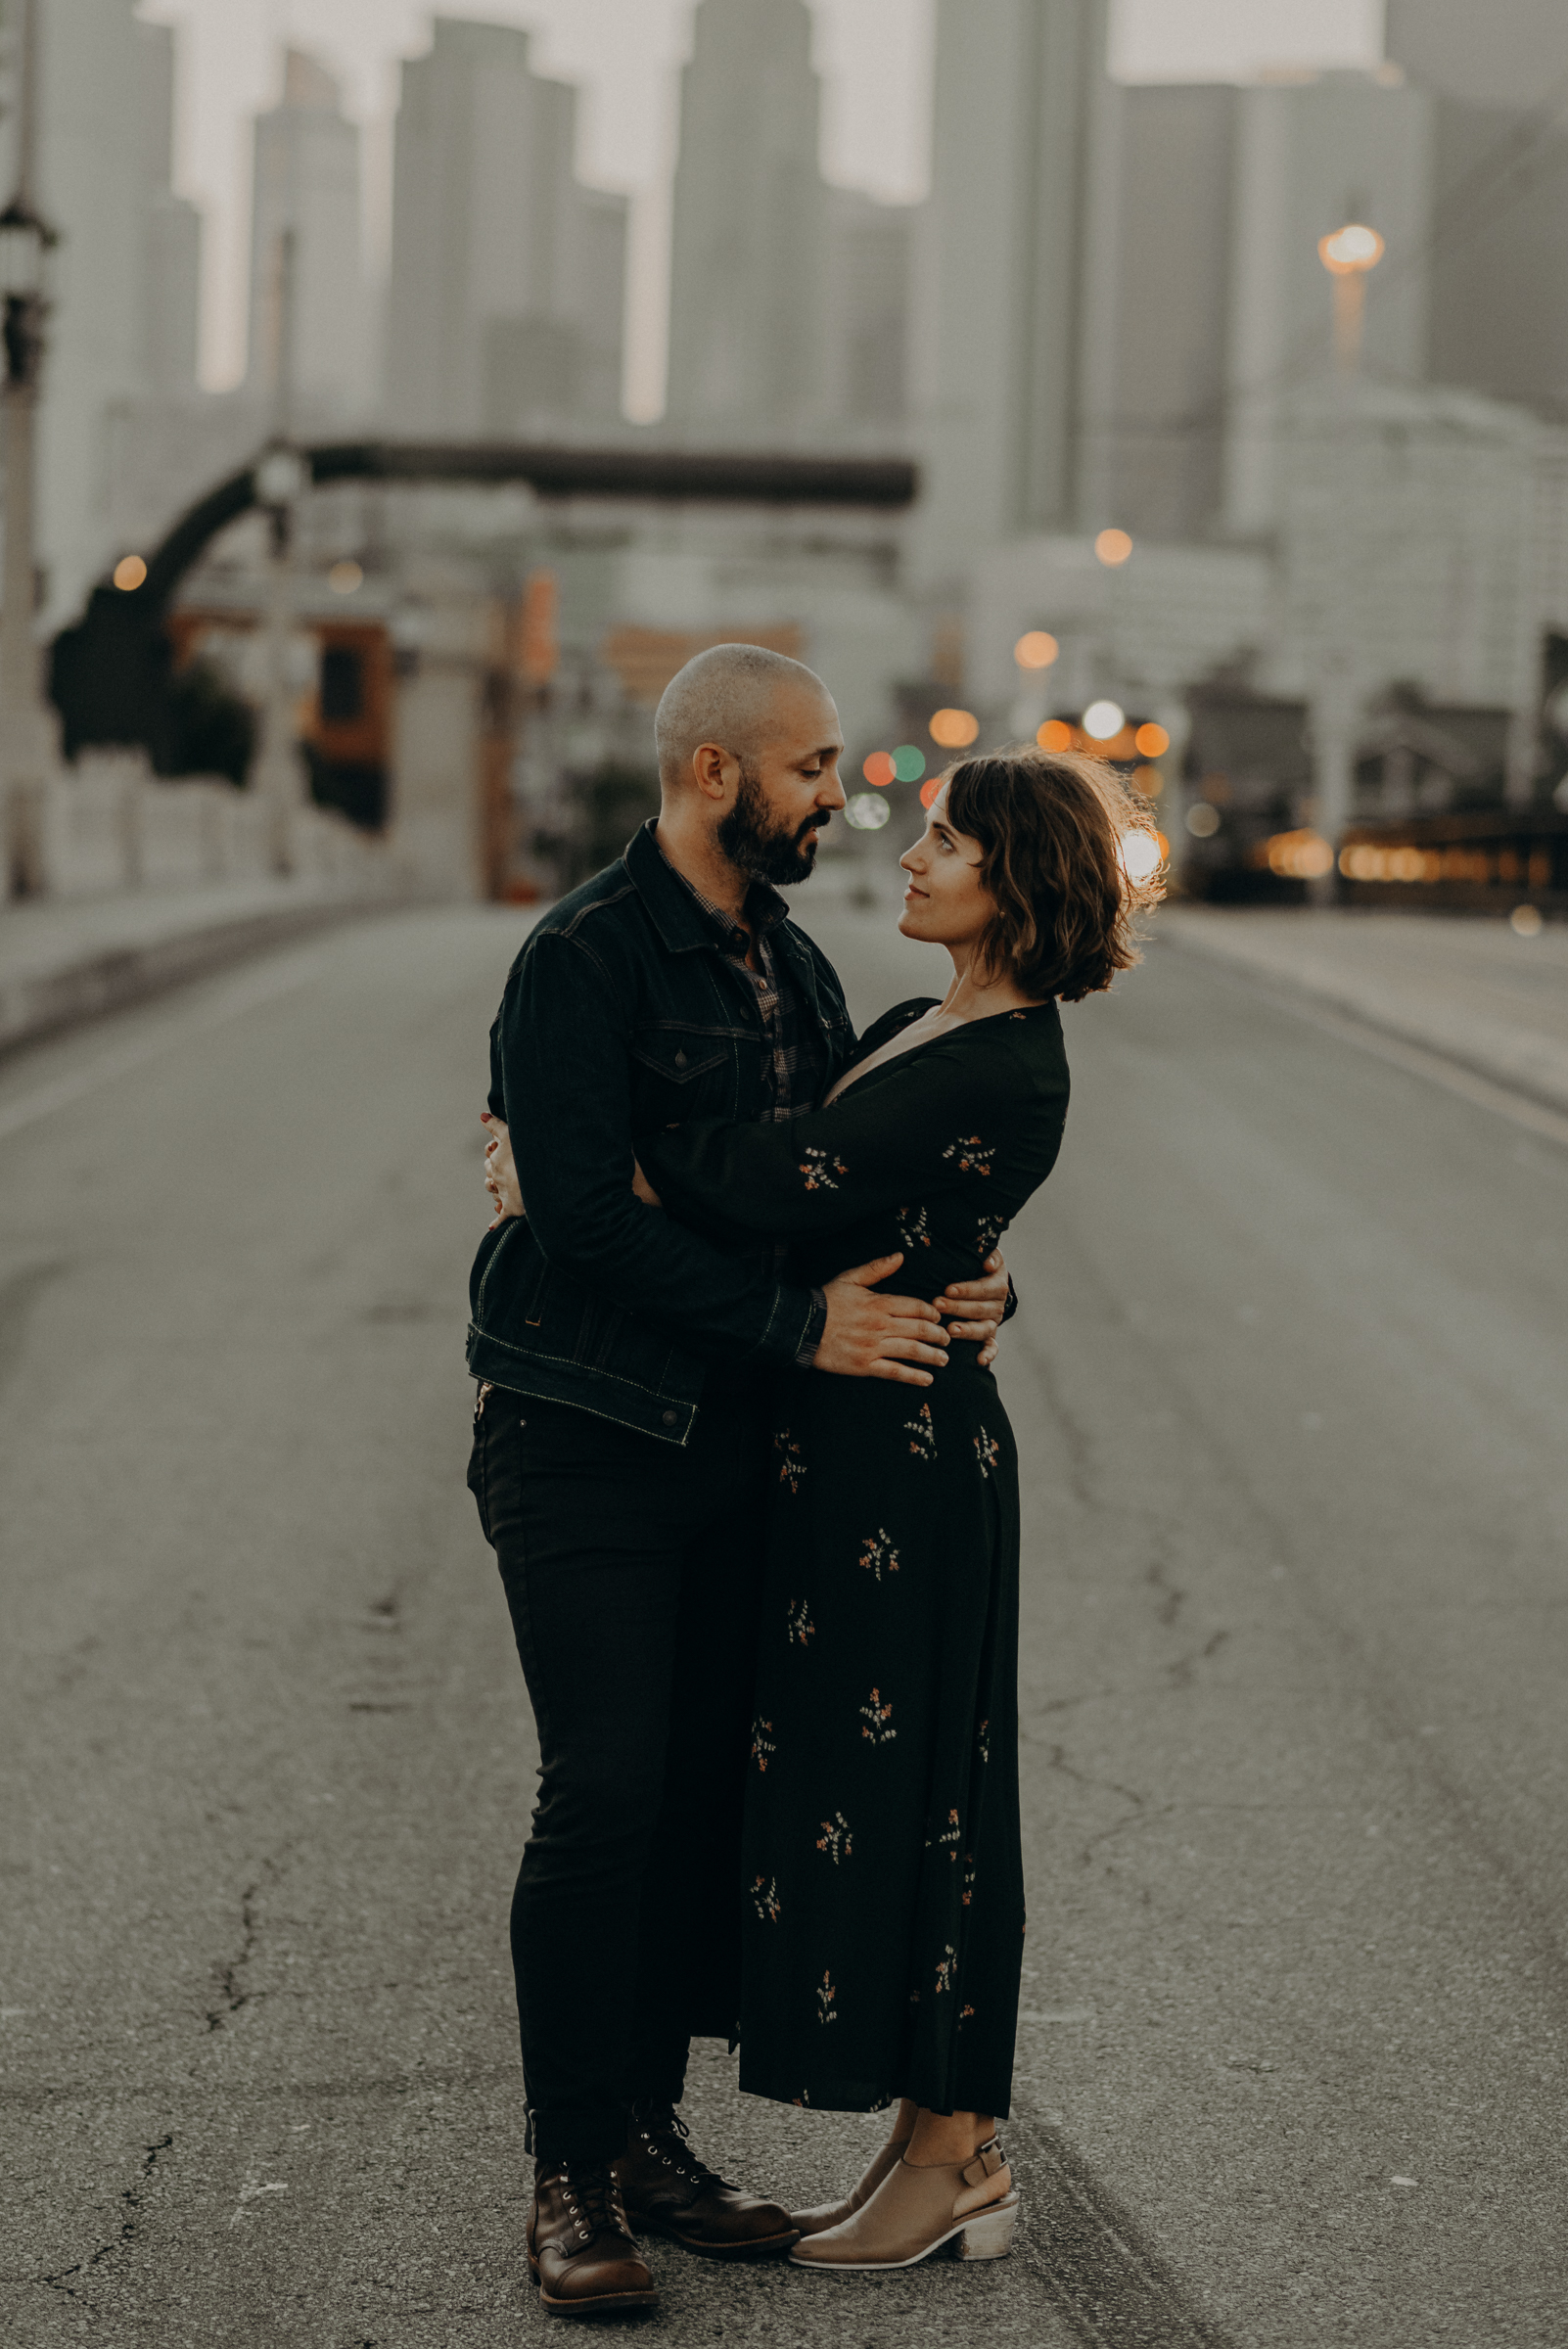 Isaiah + Taylor Photography - Downtown Los Angeles Arts District Engagement35.jpg